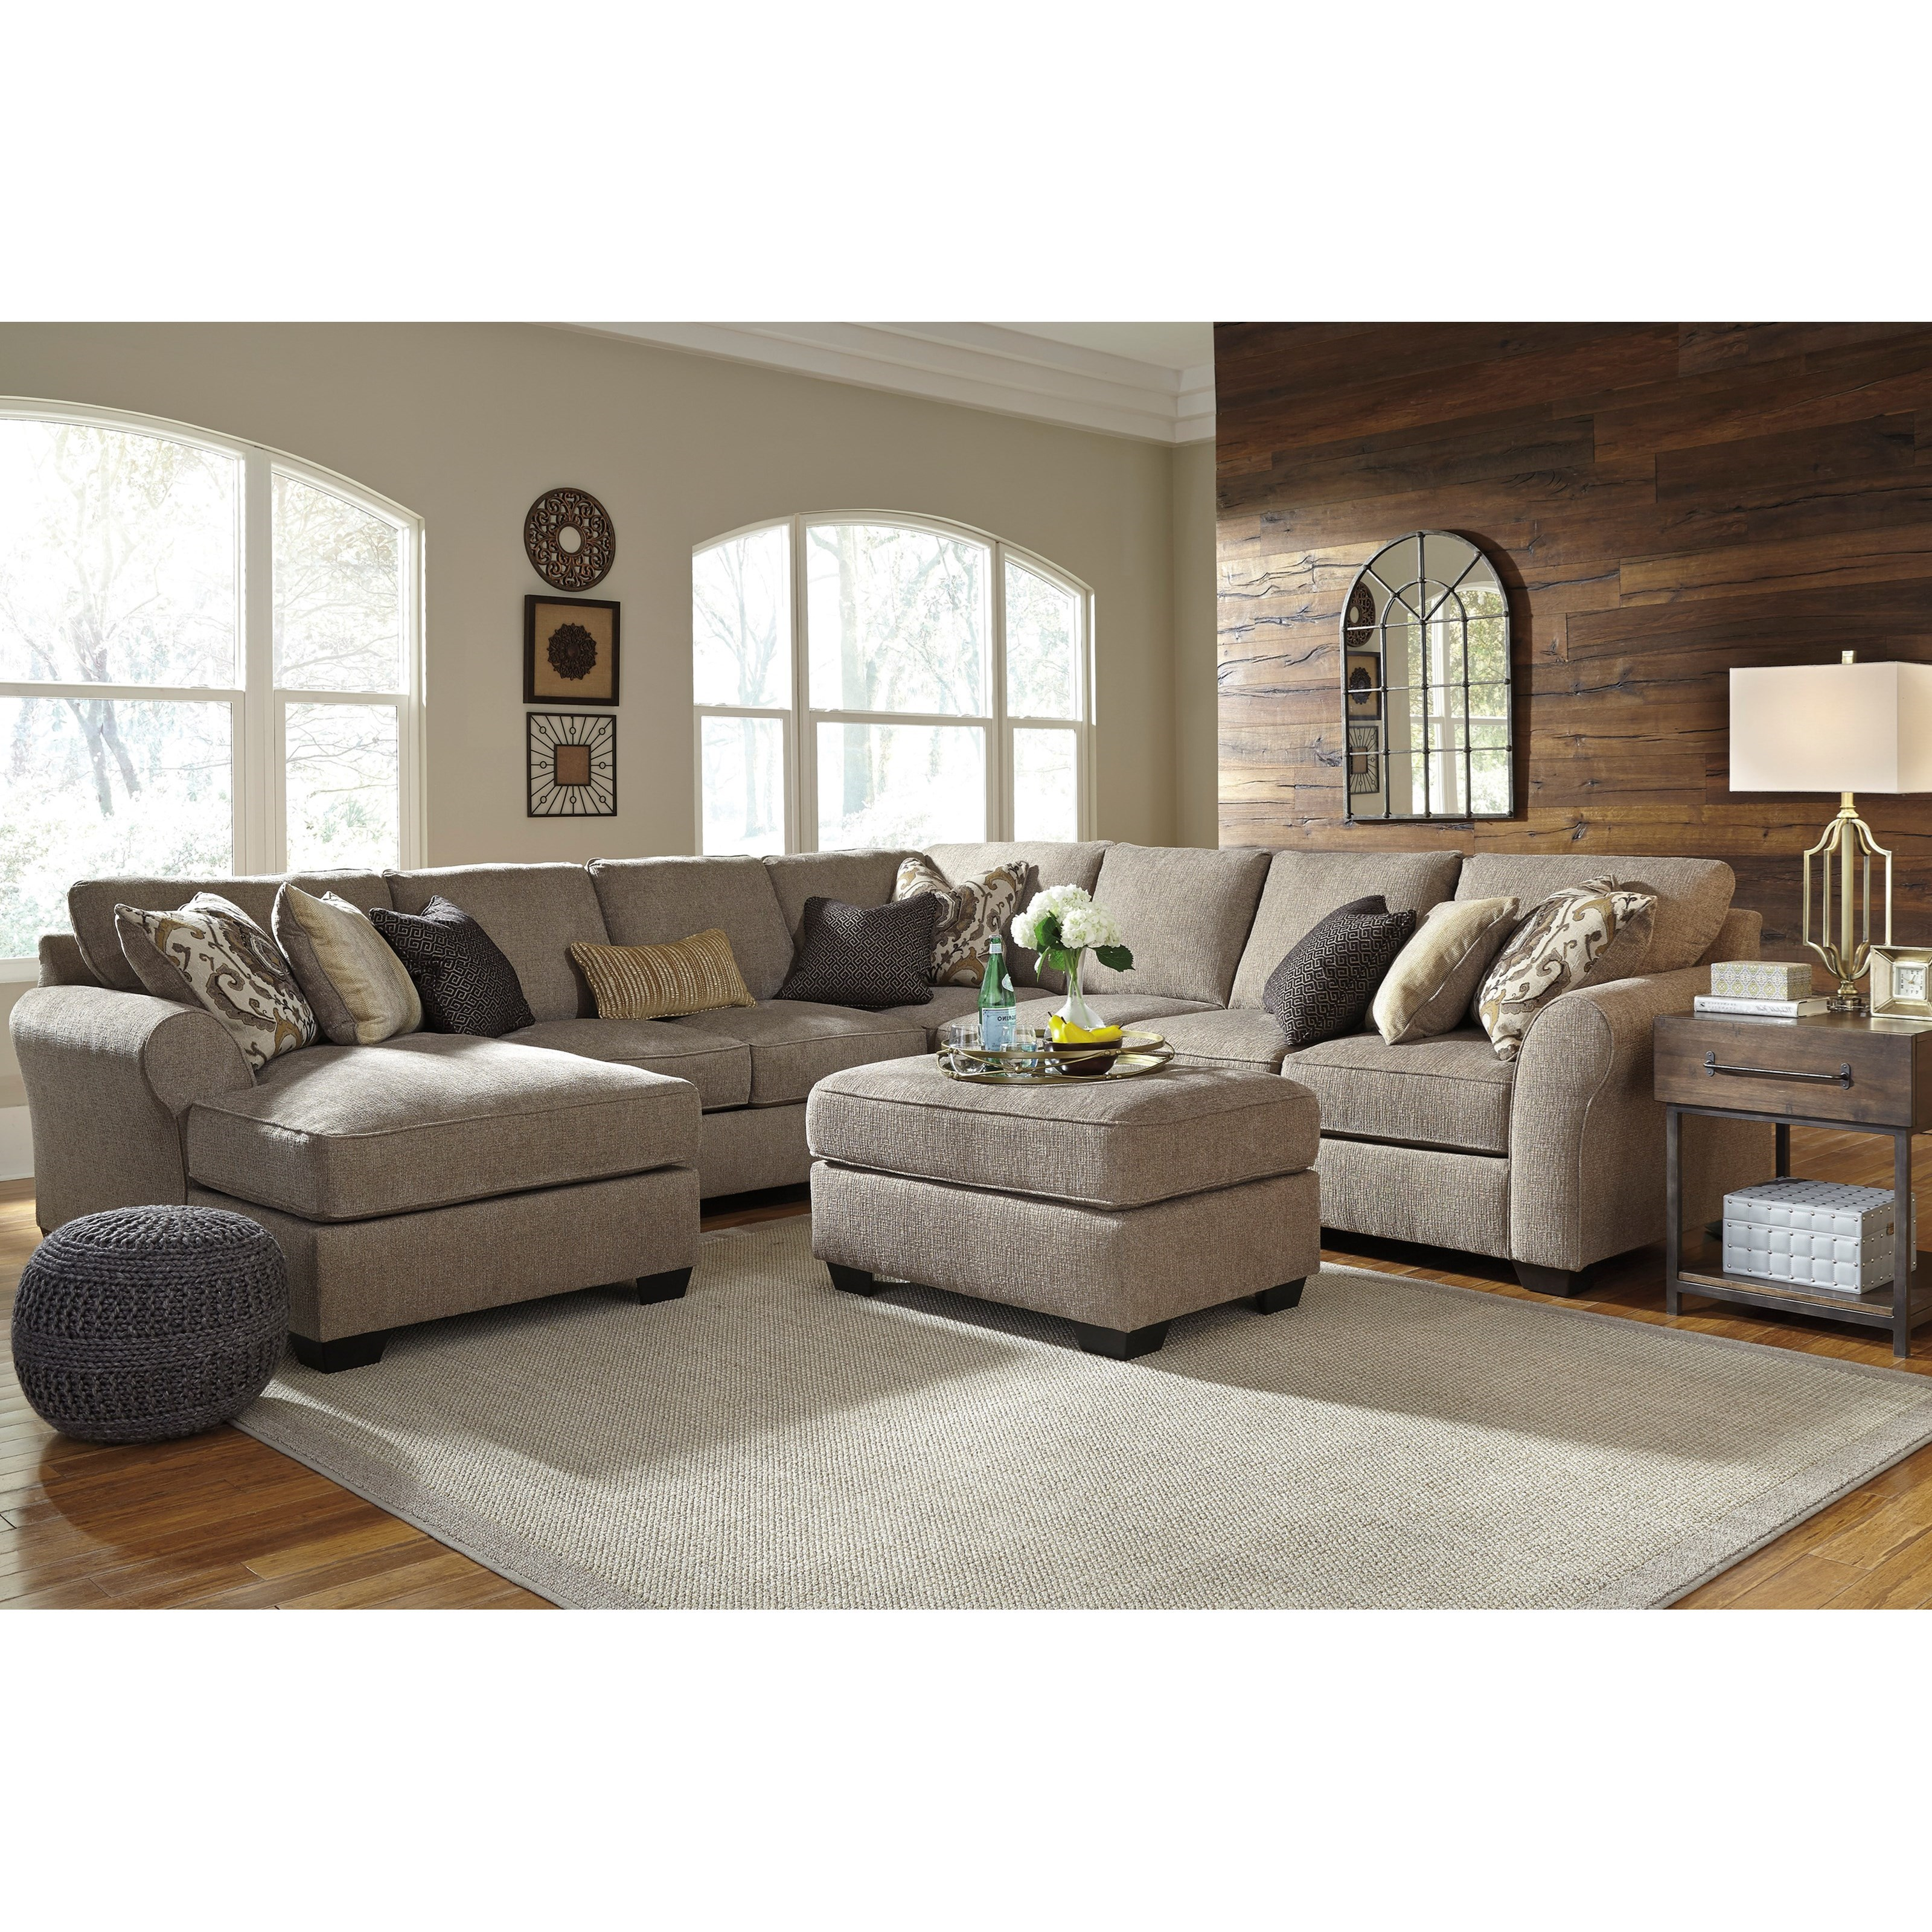 Benchcraft pantomine 5 piece sectional with left chaise for 5 piece sectional sofa with chaise